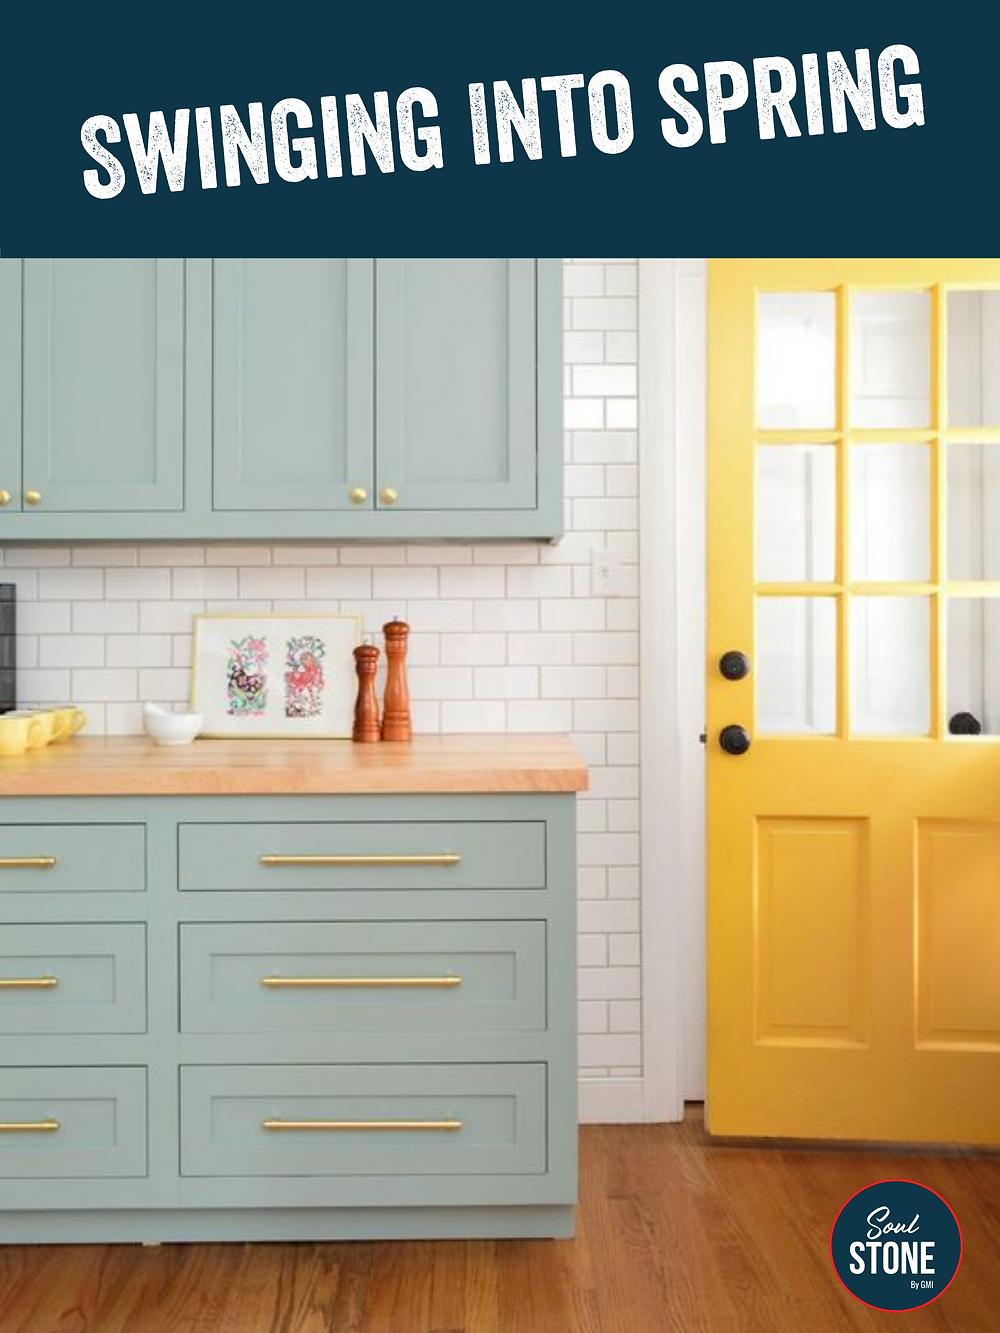 sea foam green kitchen cabinets with bright yellow painted door, kitchen renovations in prince edward county